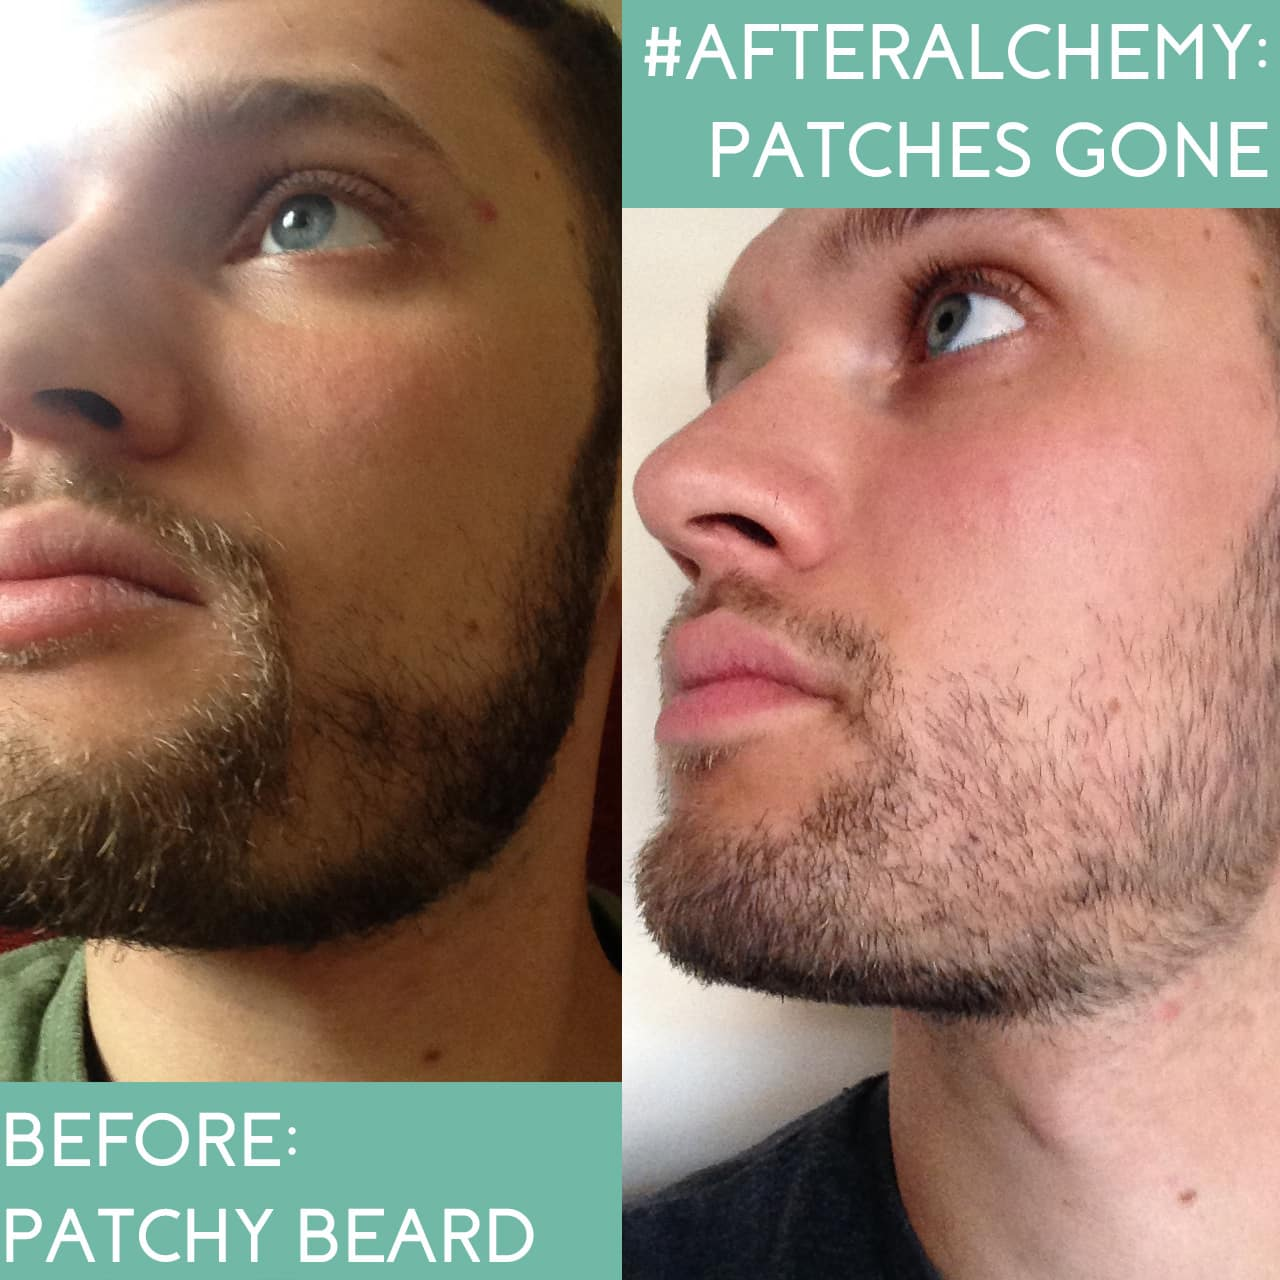 castor oil for beard before and after photo - 1